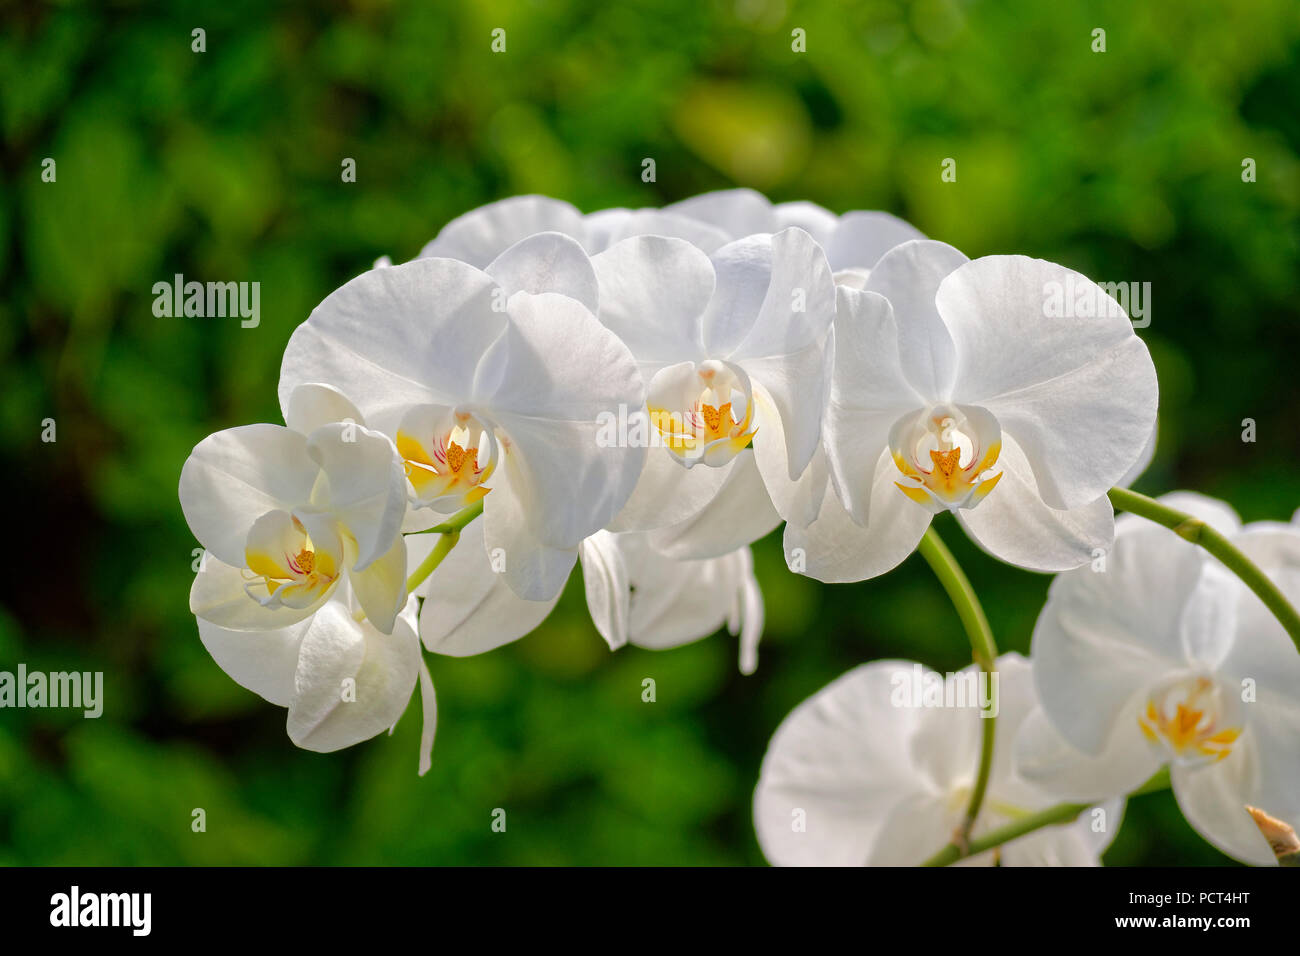 White Orchid Flowers sometimes called 'Moth' orchid. Phalaenopsis hybrid. - Stock Image